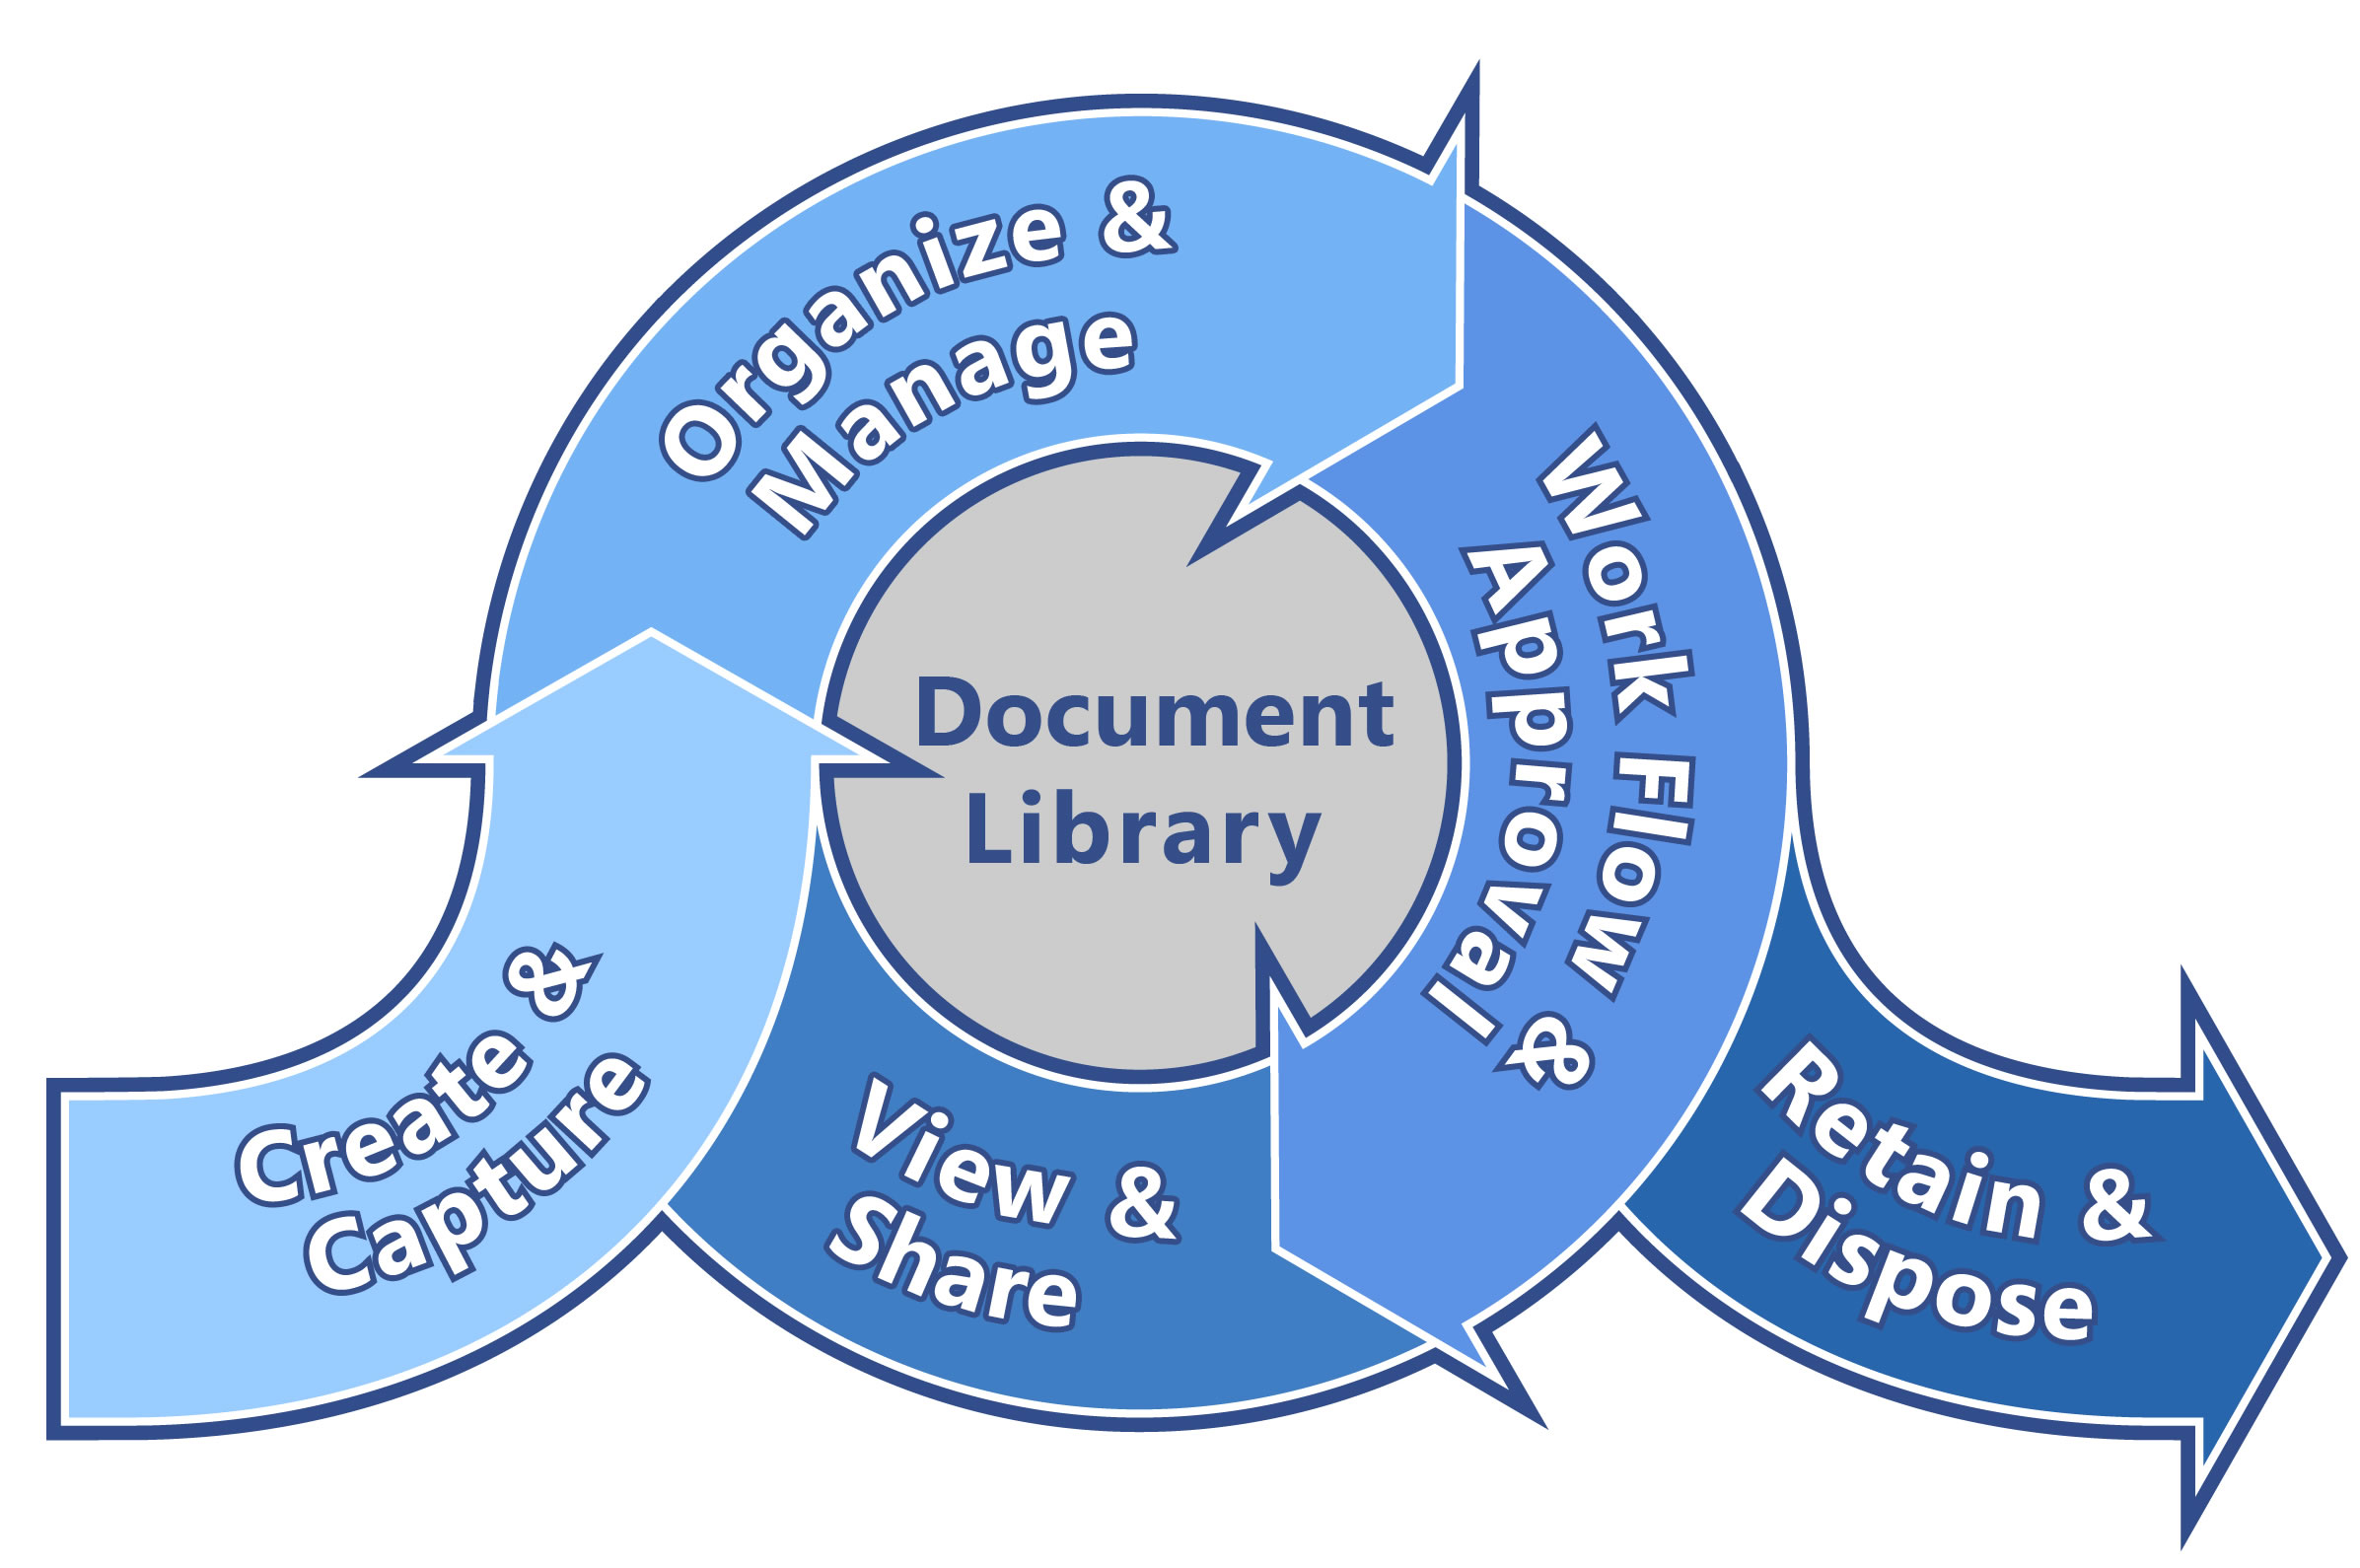 Filehold Systems Announces Webcap Paperless Document